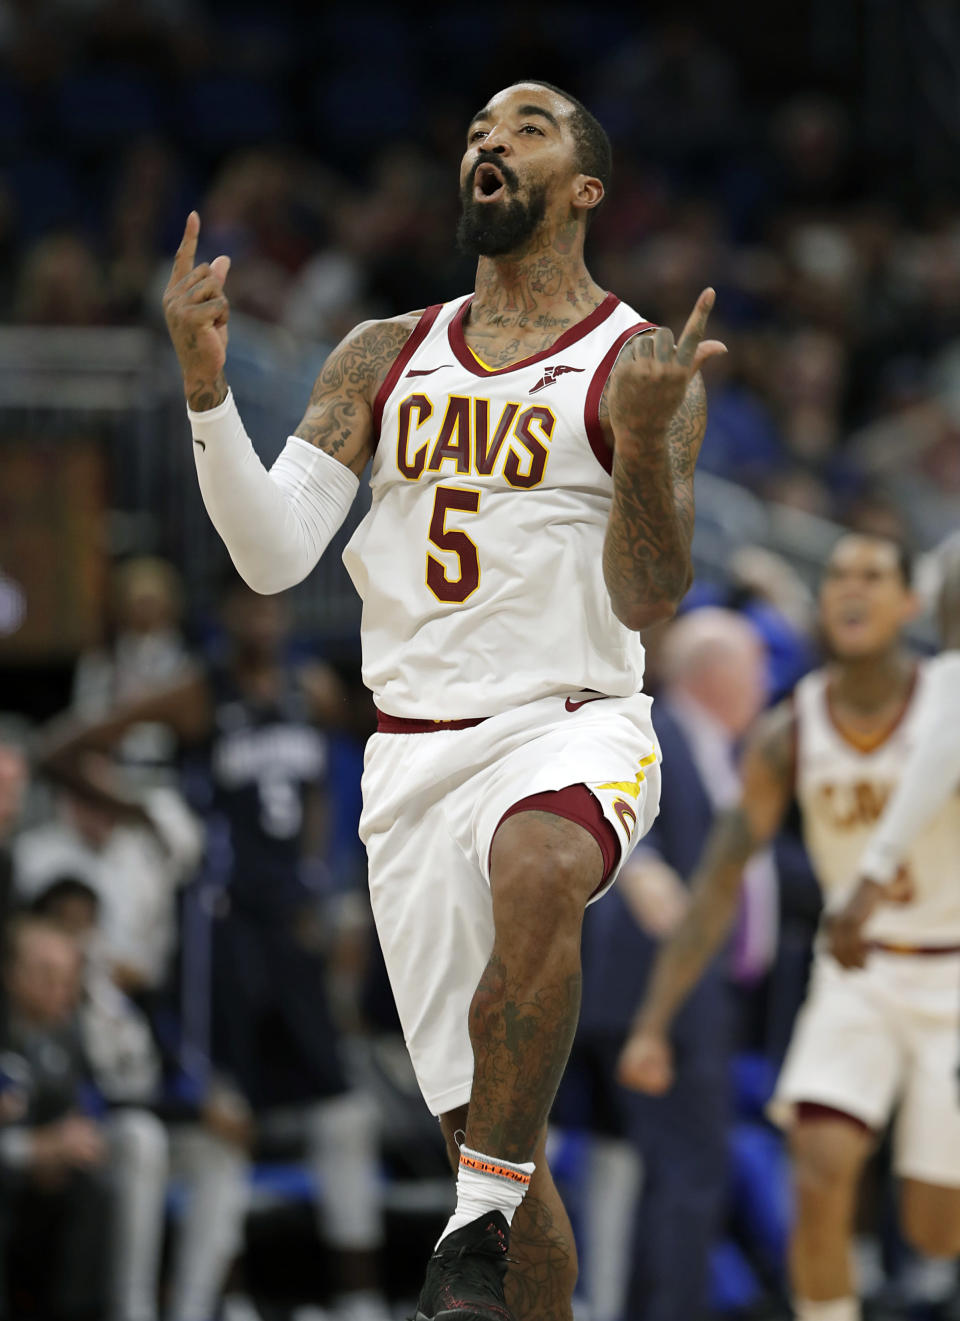 Cleveland Cavaliers' J.R. Smith celebrates after making a 3-point shot against the Orlando Magic during the second half of an NBA basketball game, Monday, Nov. 5, 2018, in Orlando, Fla. (AP Photo/John Raoux)